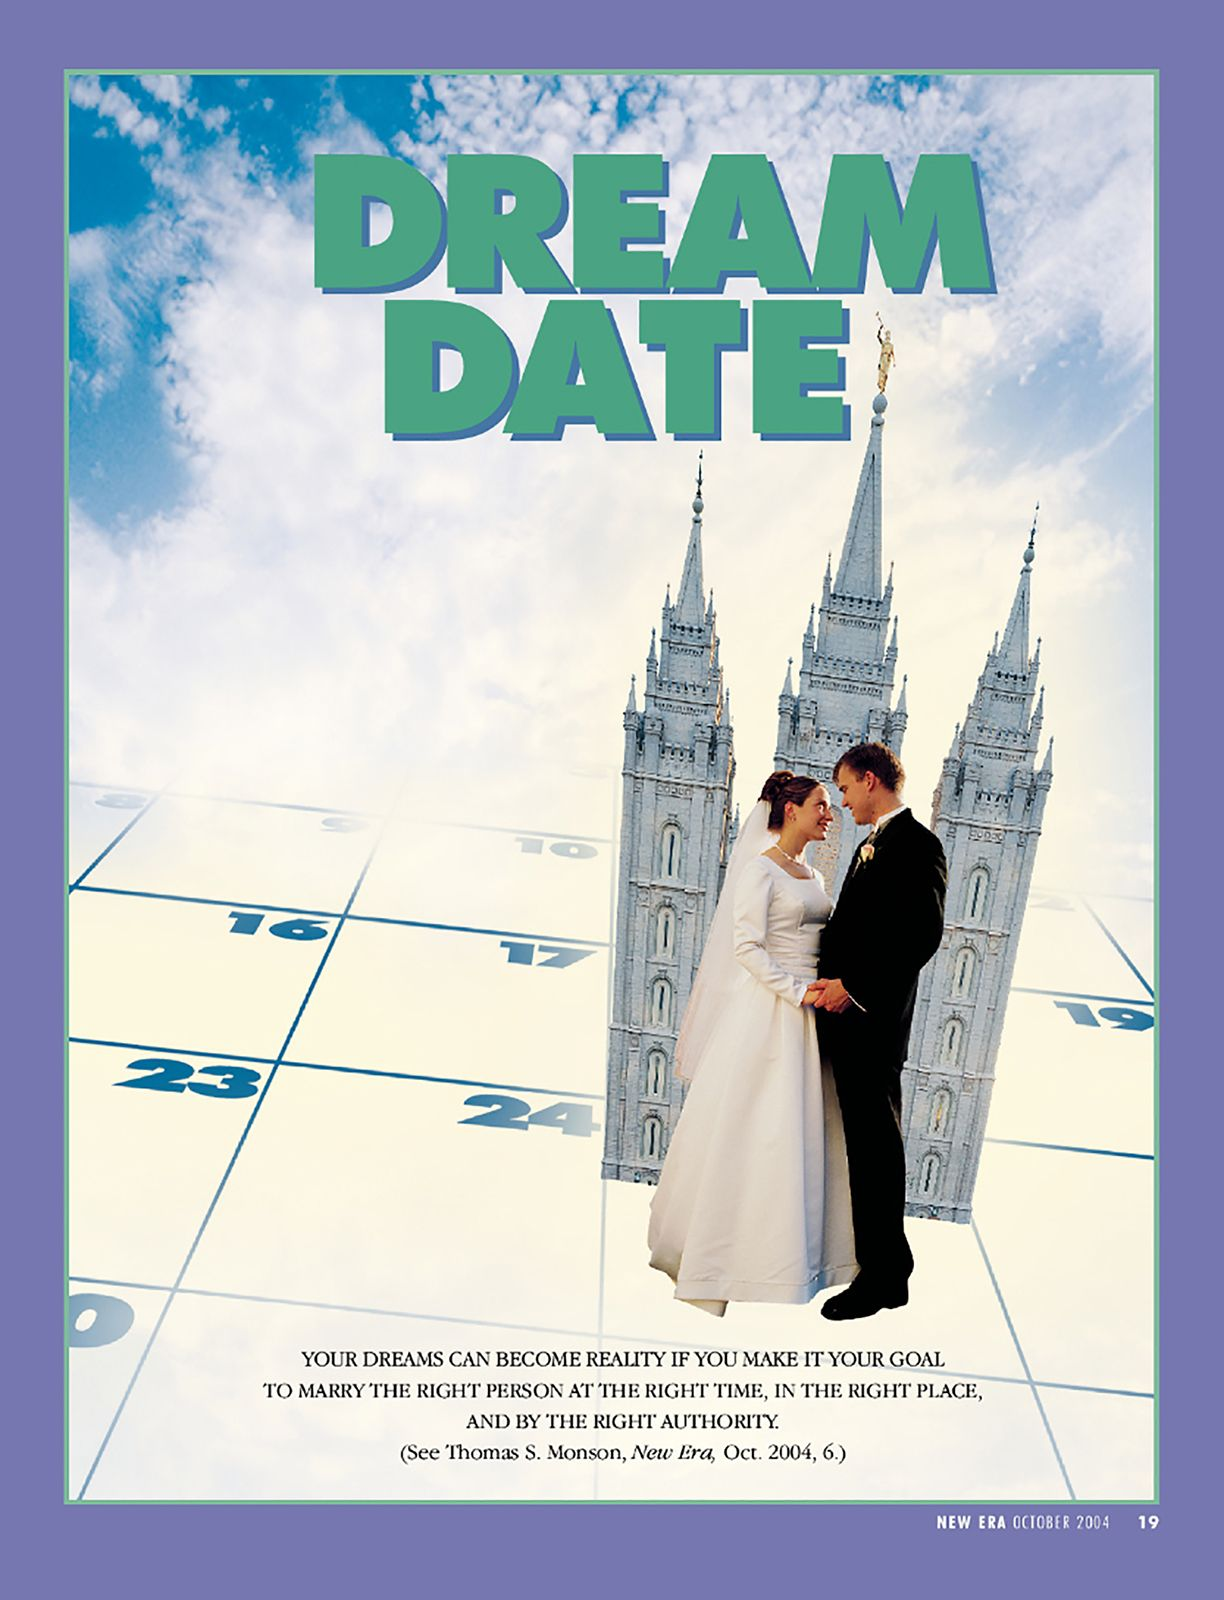 Dream Date. Your dreams can become reality if you make it your goal to marry the right person at the right time, in the right place, and by the right authority. (See Thomas S. Monson, New Era, Oct. 2004, 6.) Oct. 2004 #dreamdates